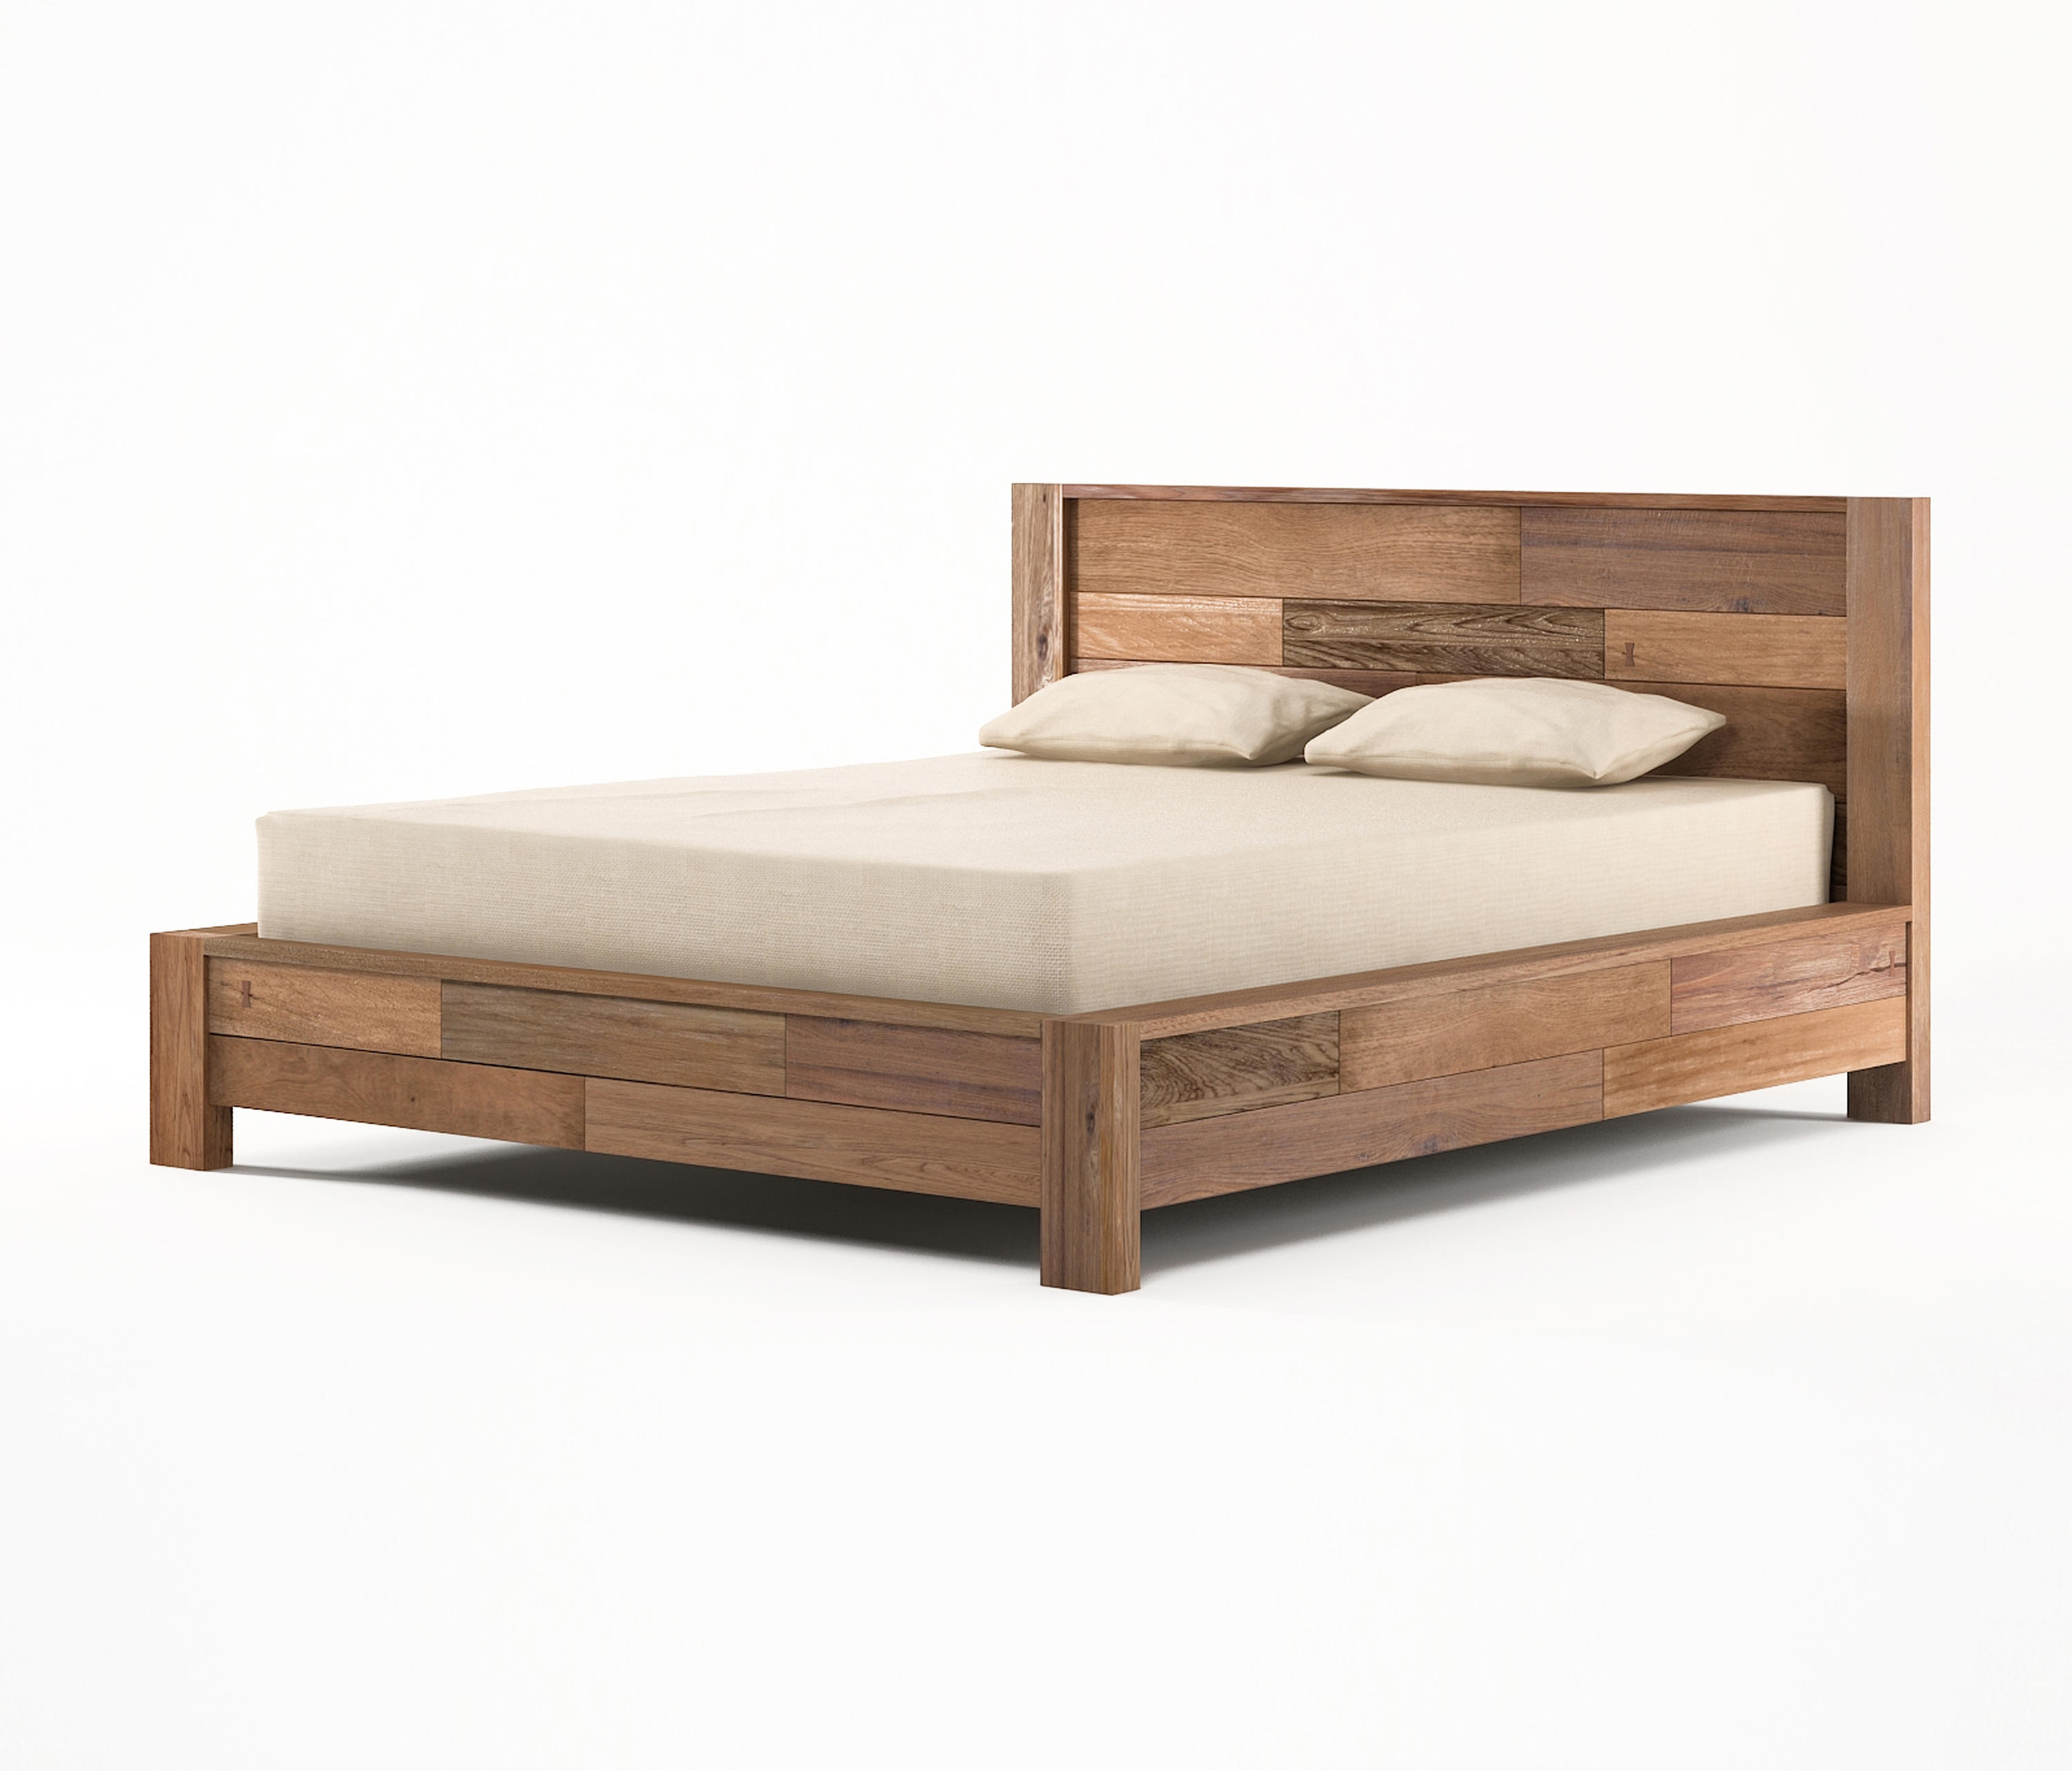 Queen Size Bed: ORGANIK EUROPEAN QUEEN SIZE BED